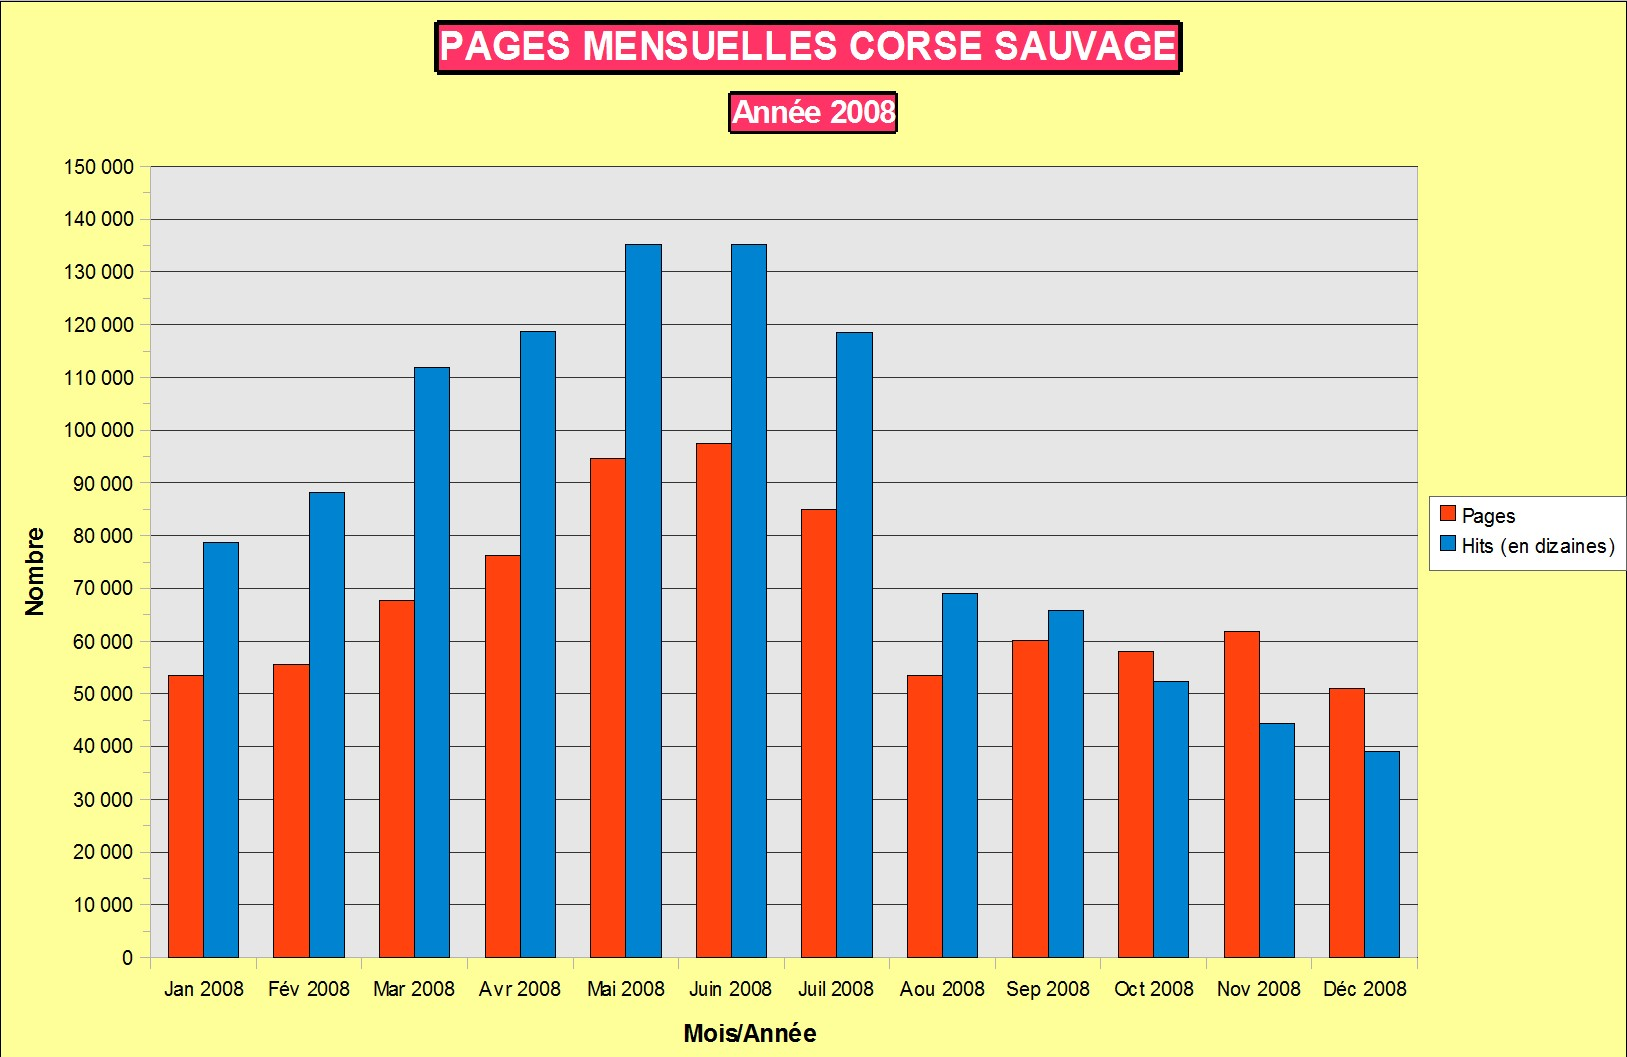 Stats pages mensuelles Corse sauvage